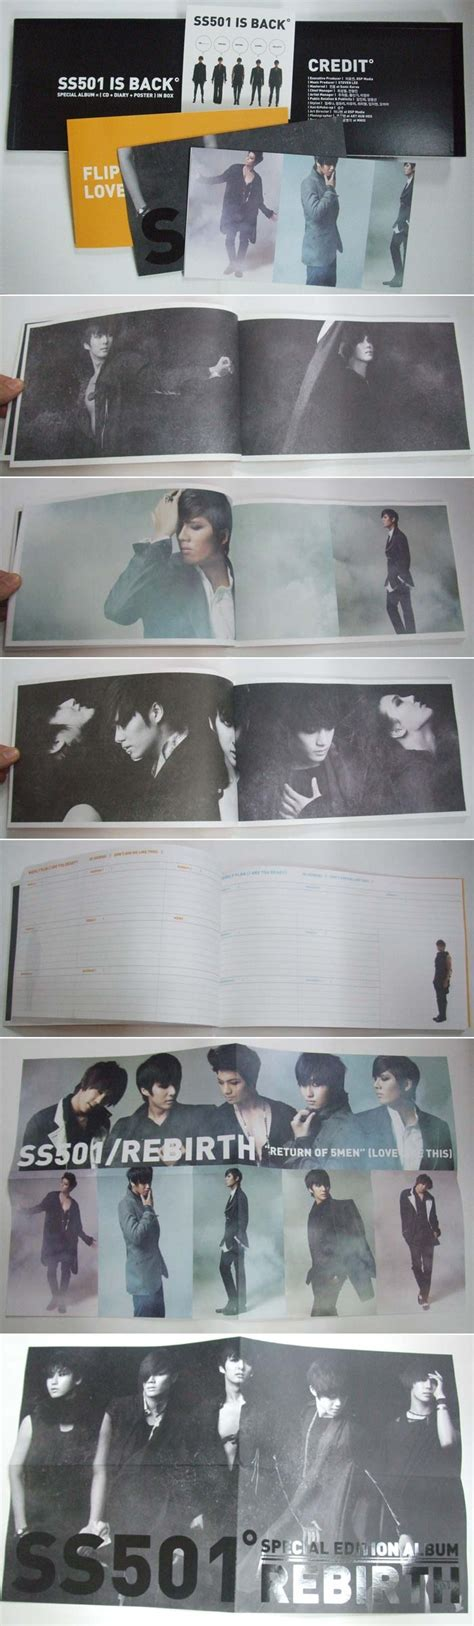 Ss501 Rebirth Album Normal Version ss501 discograf 237 a asianpopmx